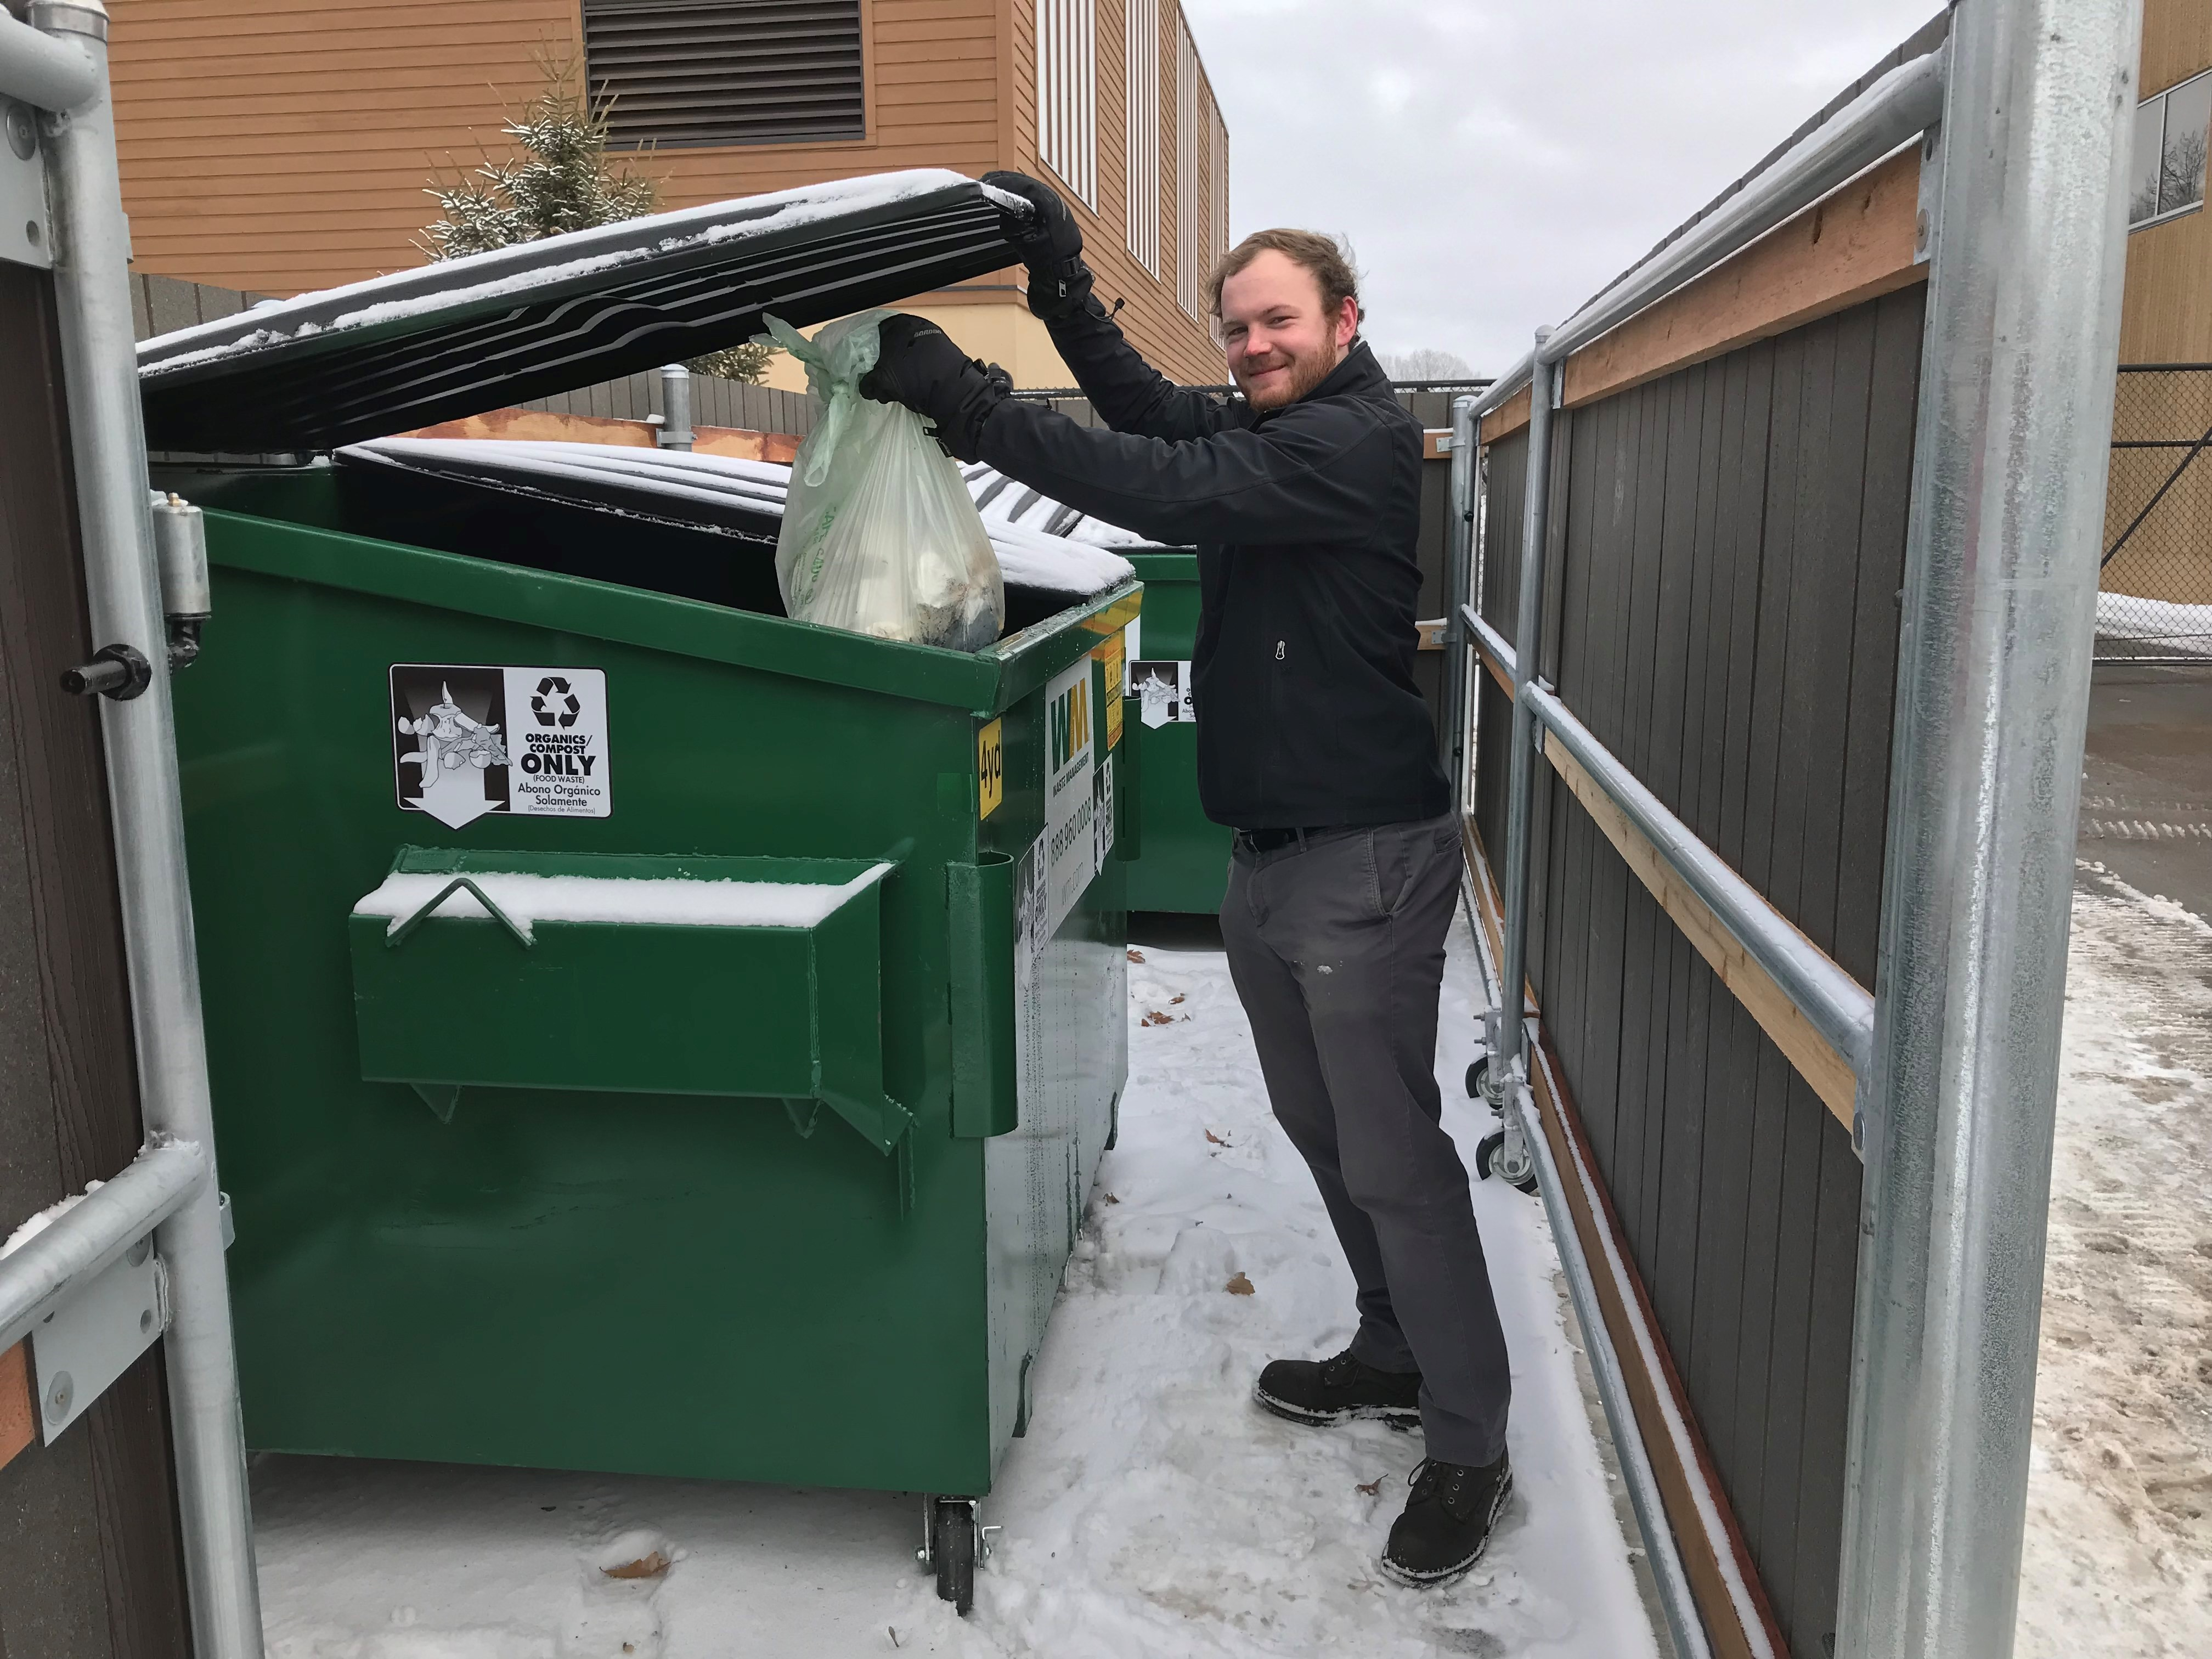 Food scraps being dropped off at a new site